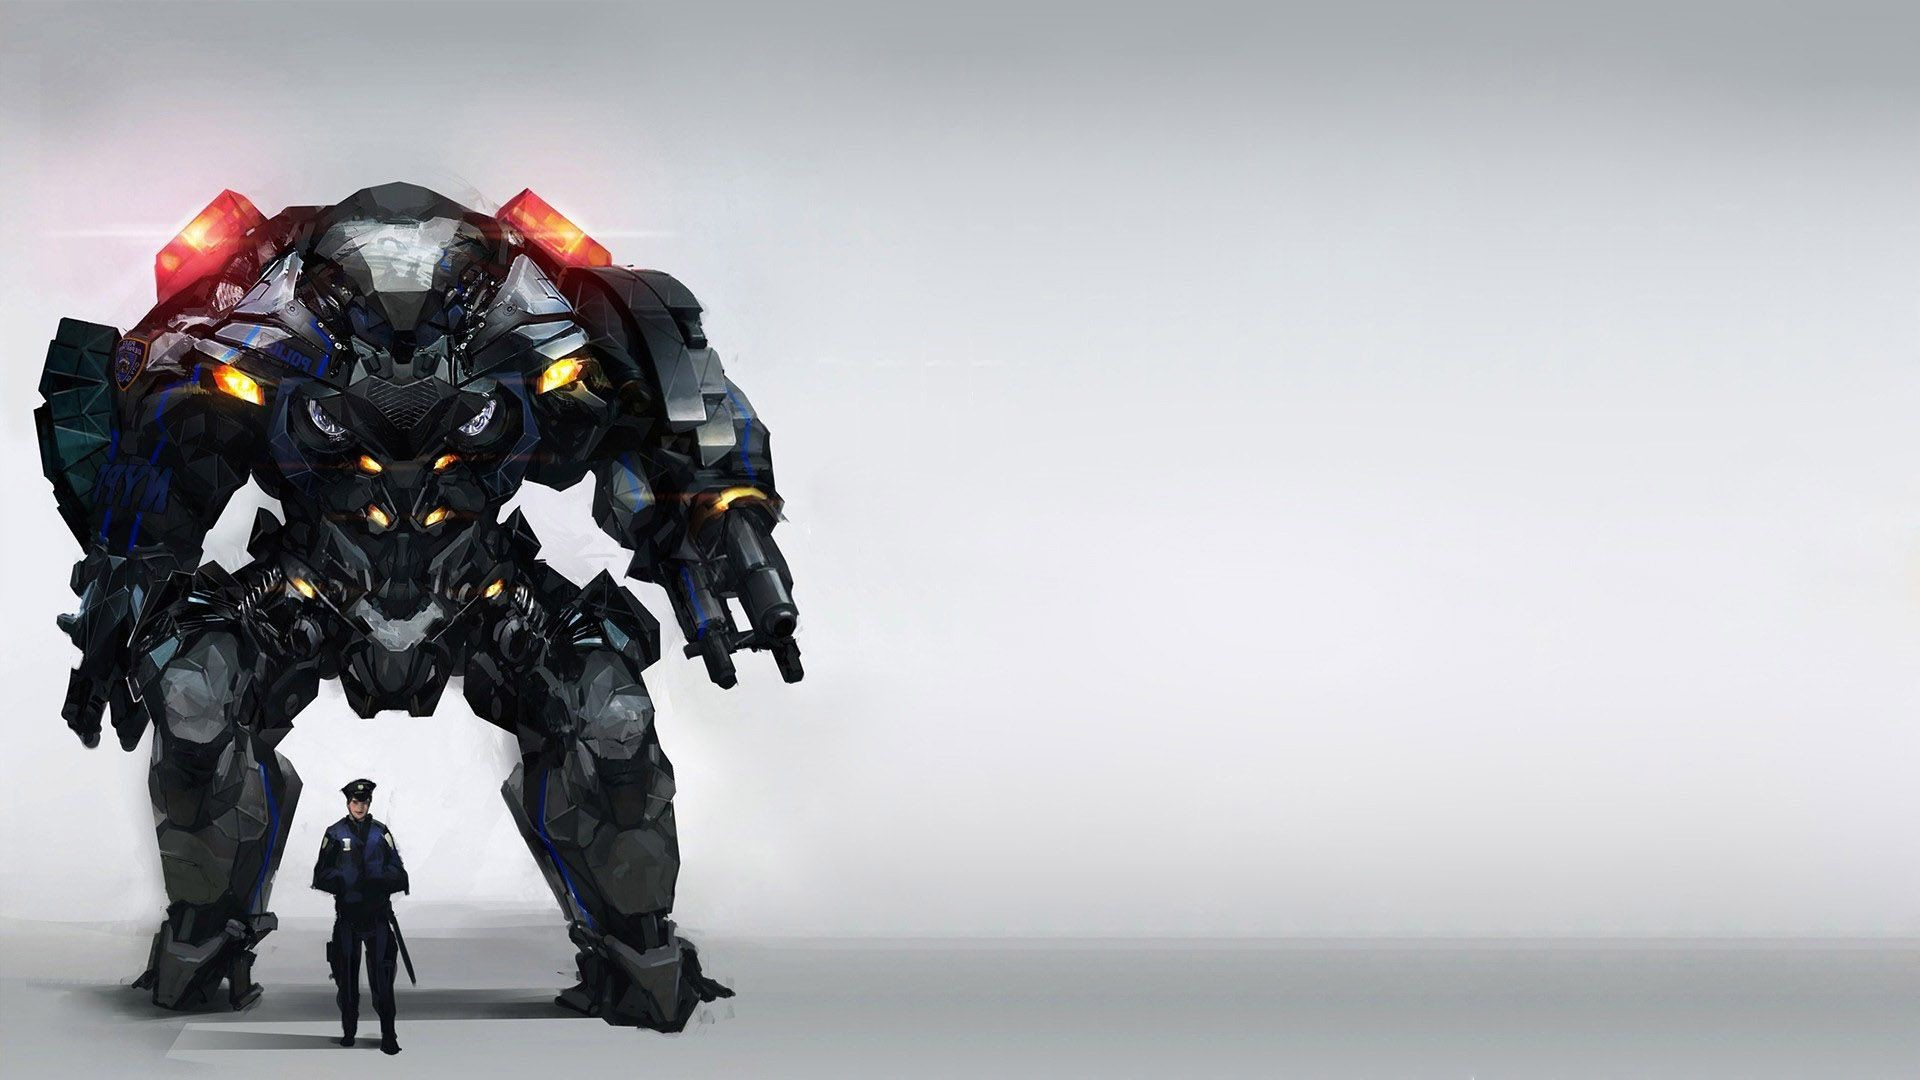 Mecha Wallpapers, Wallpapers for Mecha, | Resolution 1920×1080